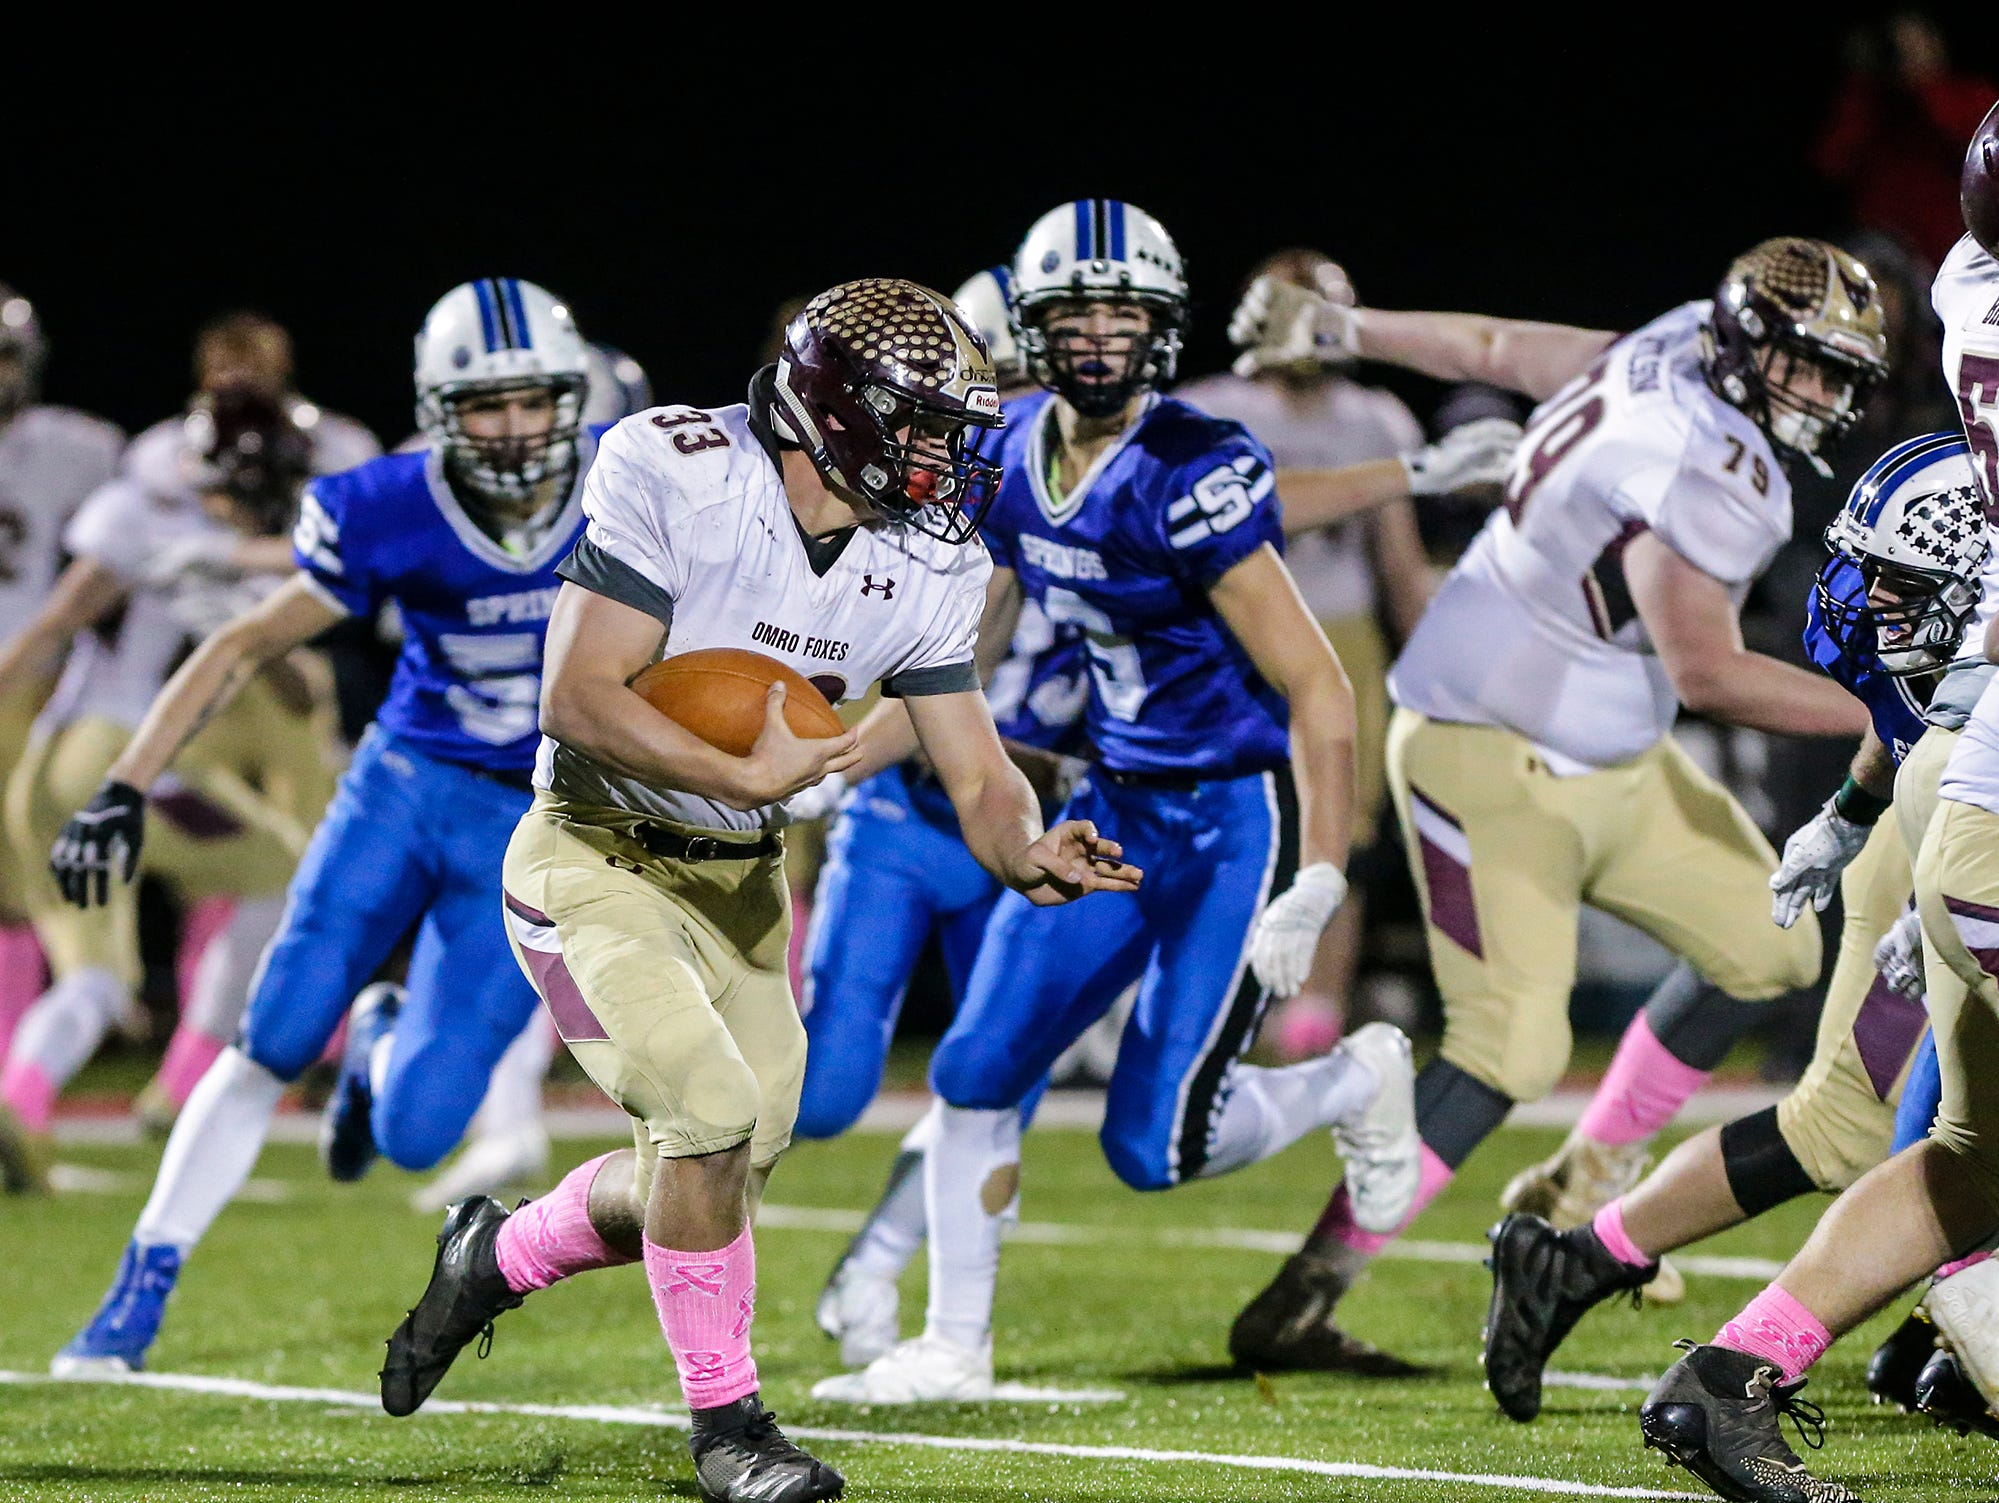 Omro High School football's Jaeden Frost runs the ball against St. Mary's Springs Academy Friday, October 26, 2018 during their WIAA division five, level 2 playoff game played in Lomira, Wisconsin. Springs won the match-up 33-20. Doug Raflik/USA TODAY NETWORK-Wisconsin